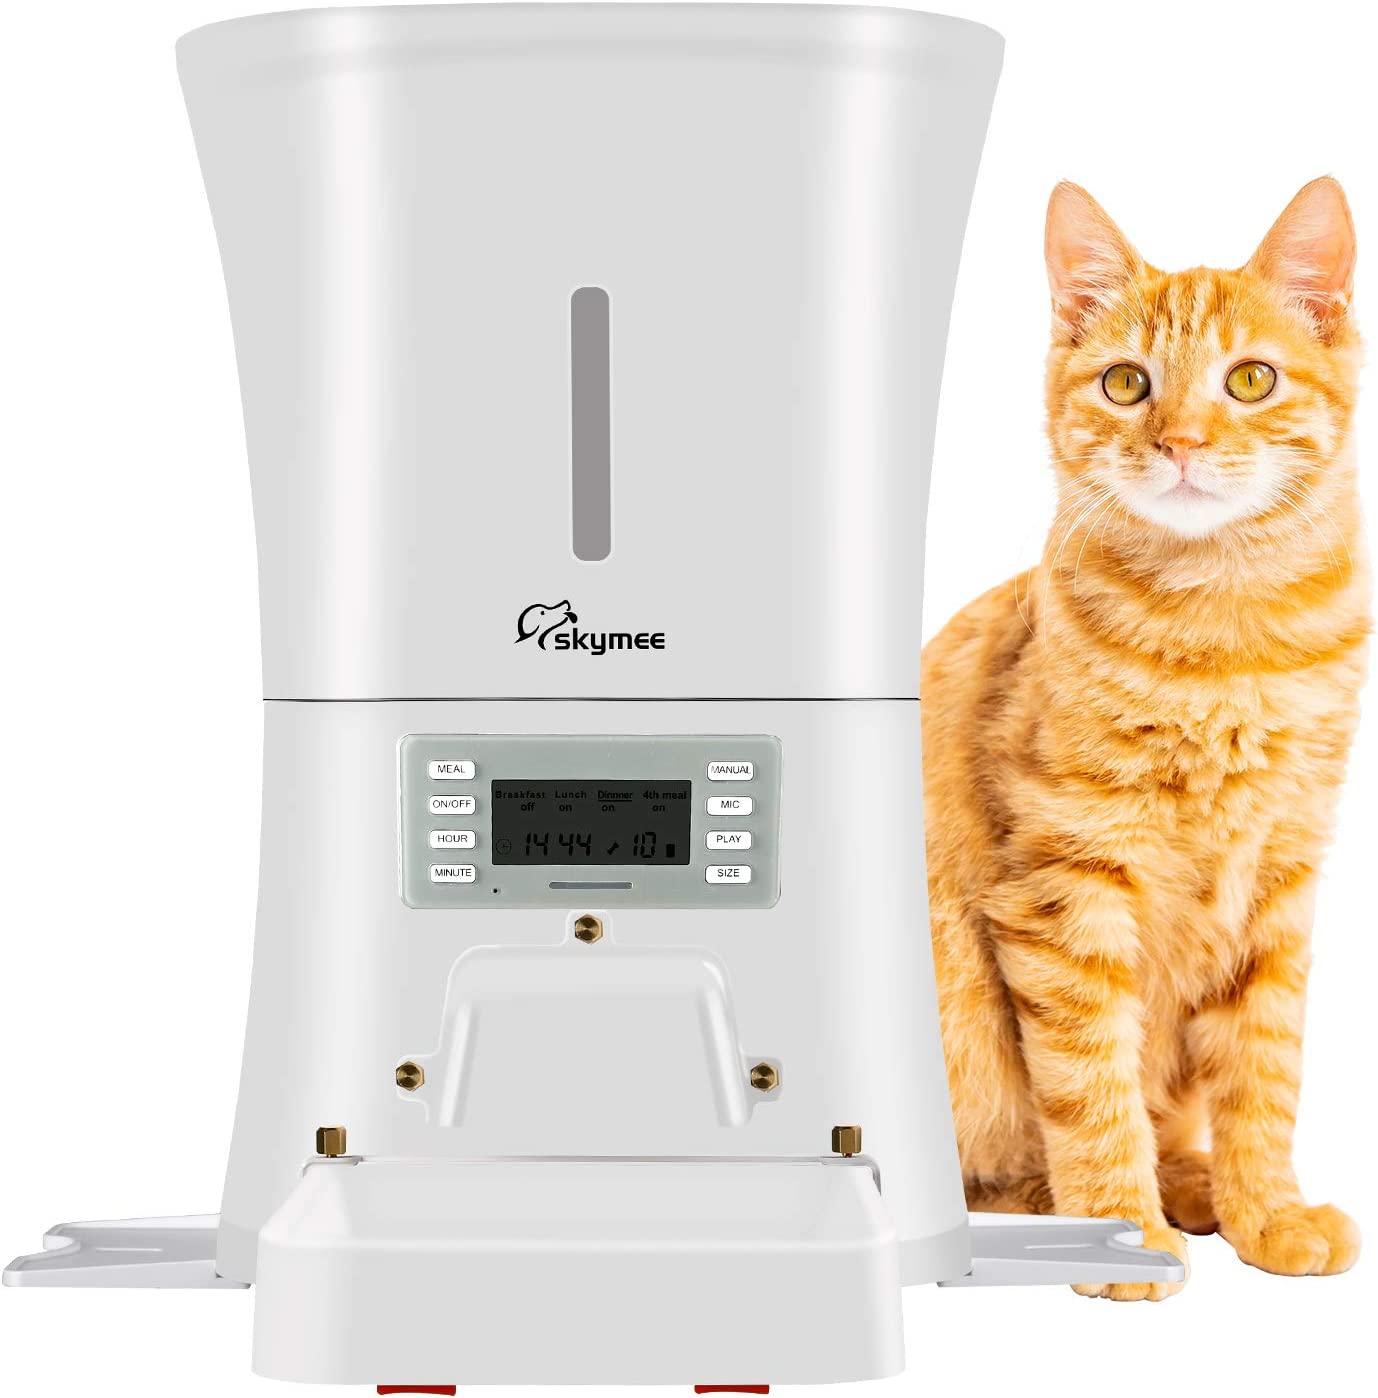 SKYMEE 8L Timer Automatic Pet Feeder Food Dispenser for Cats & Dogs – Portion Control, Voice Recording, Timer Programmable Up to 4 Meals Per Day